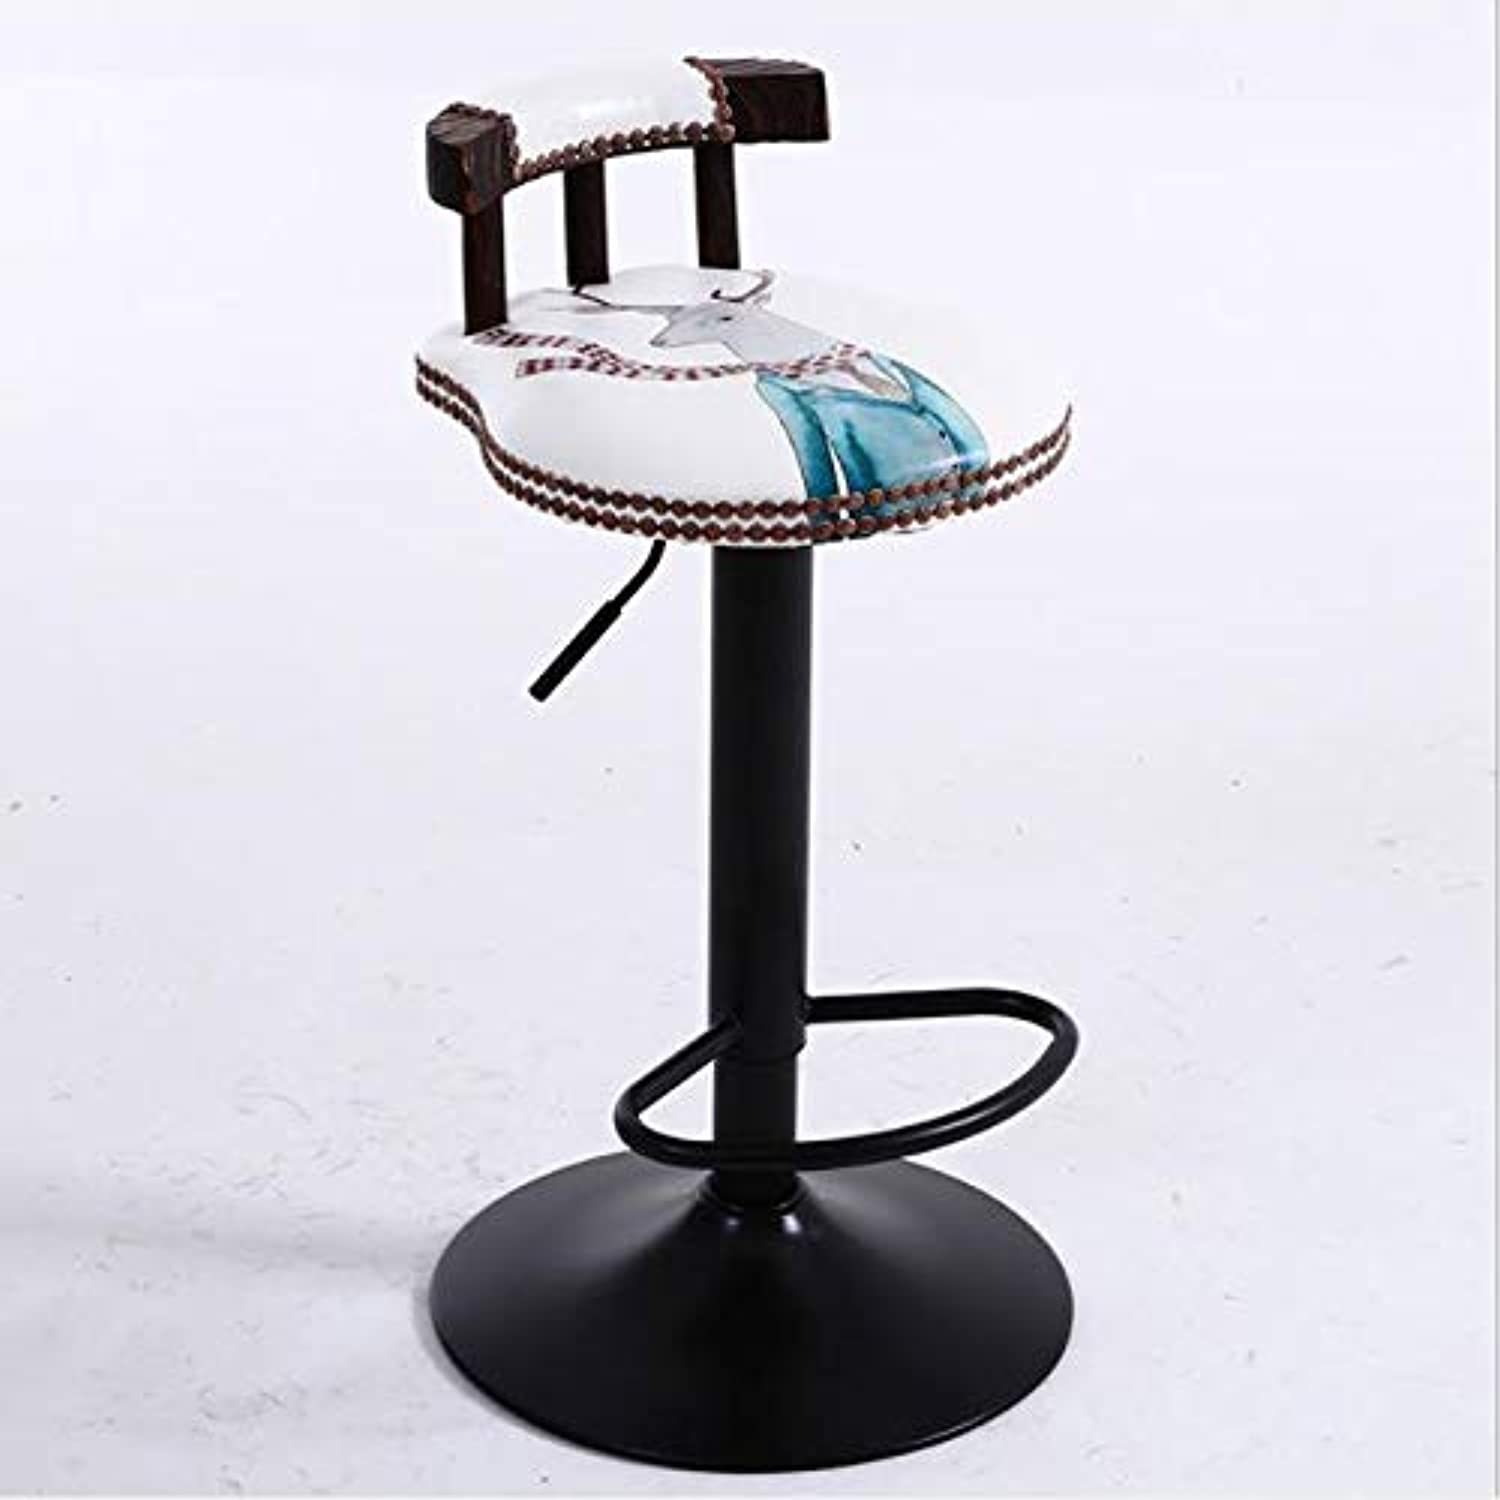 Bar stools Cafe Seat Leisure Bar Chair Vintage Bar Stool, Bar Chair, High Stool, with Backrest Swivel Chair Size  60-80cm Height Chair (color   F)